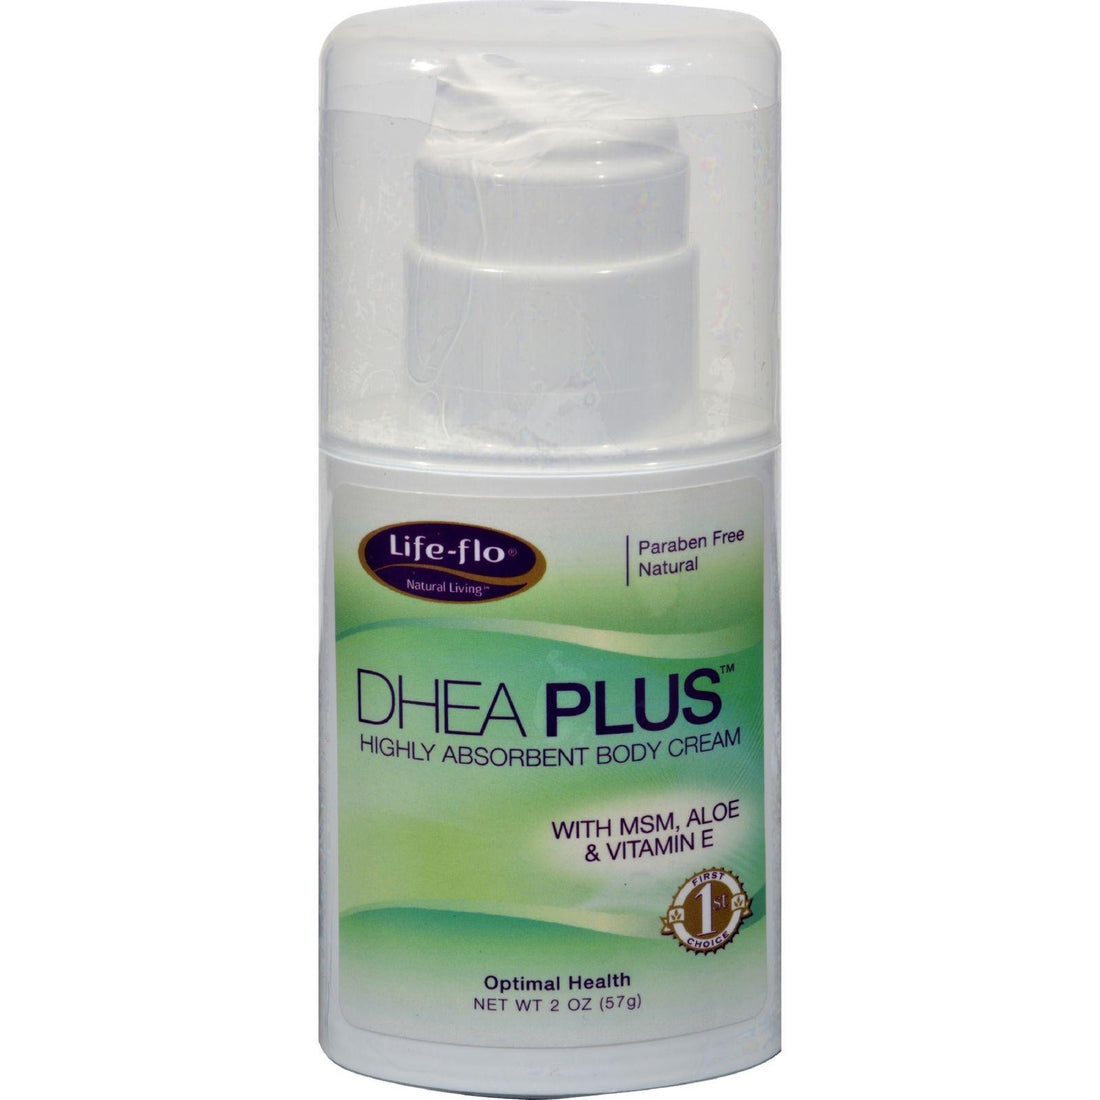 Mother Mantis: Life-flo Dhea Plus Body Cream - 2 Oz Life-flo